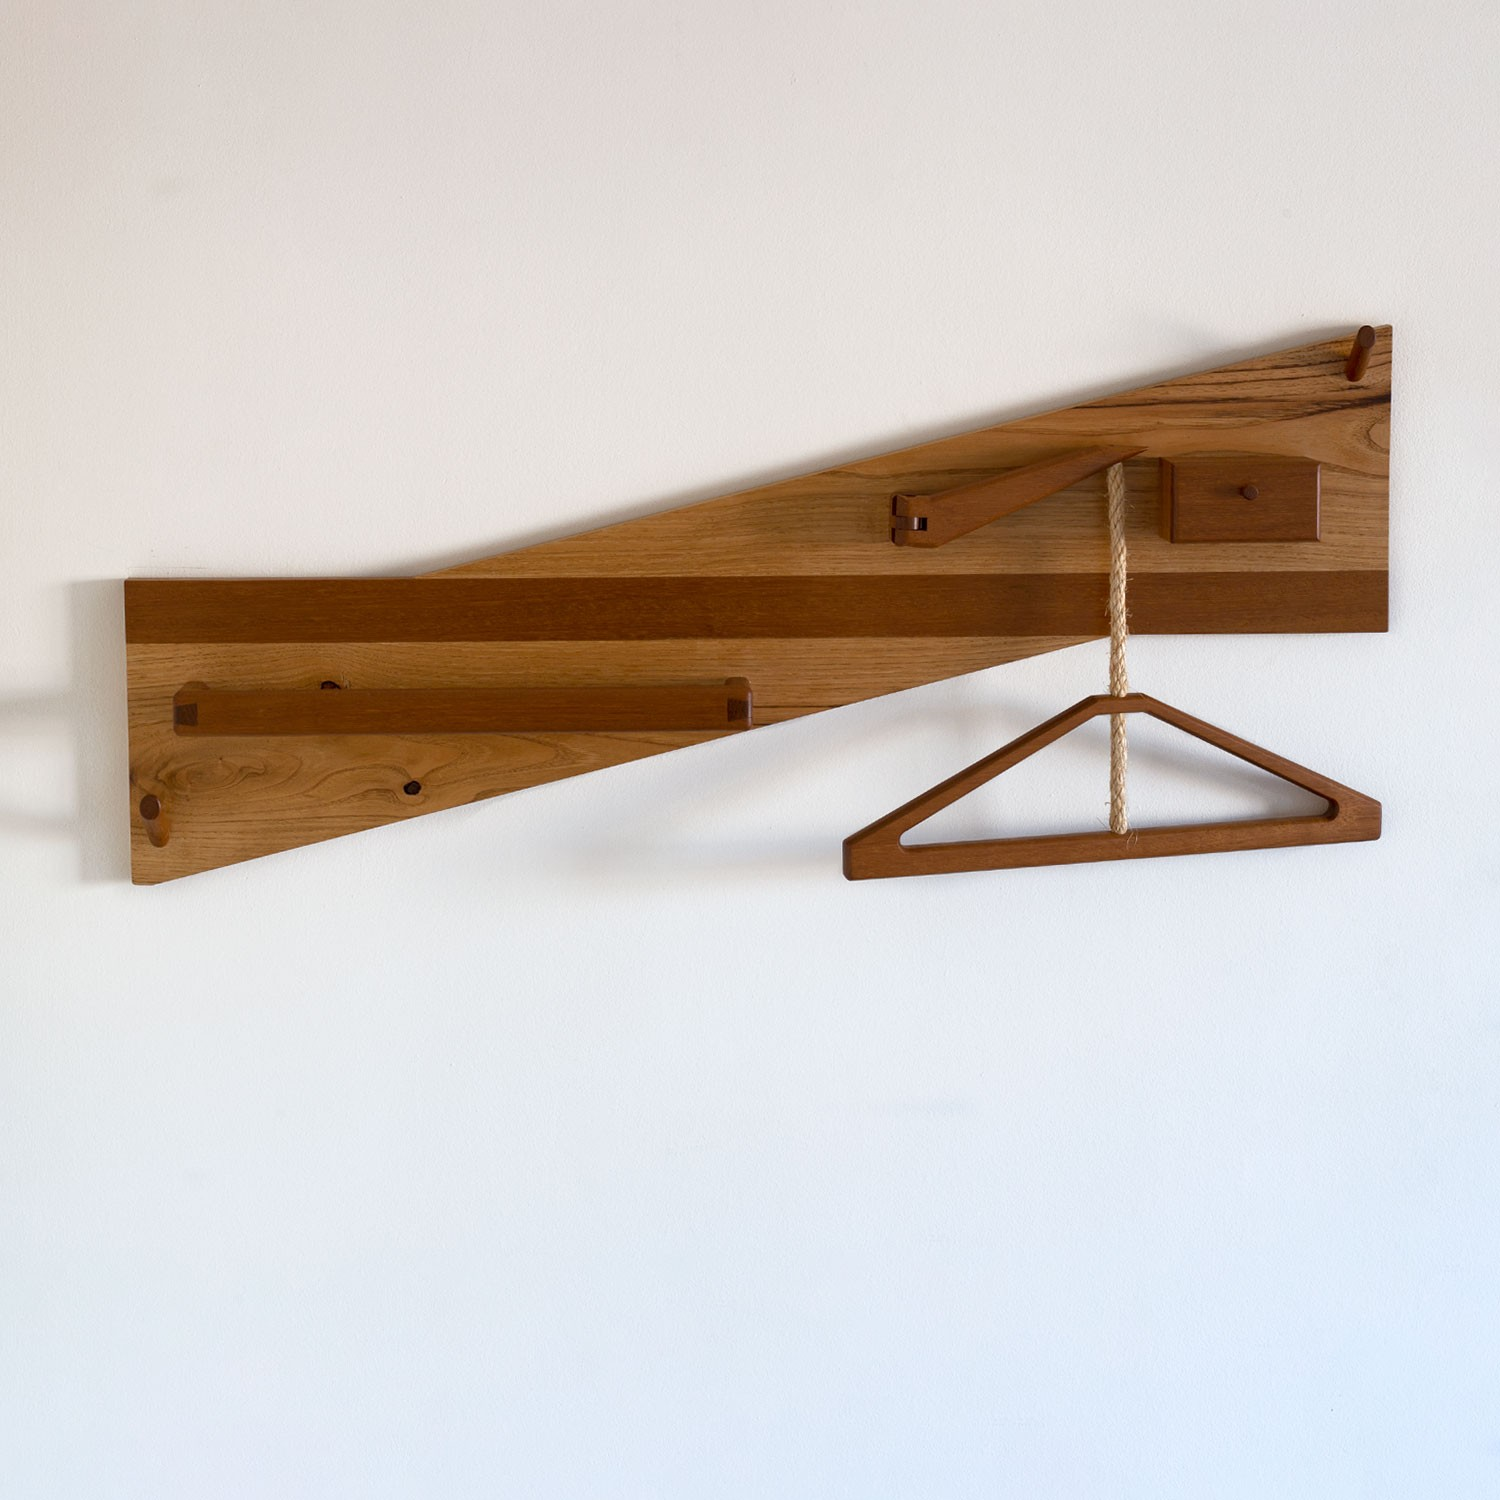 Hanging Valet Stand in solid wood, handmade